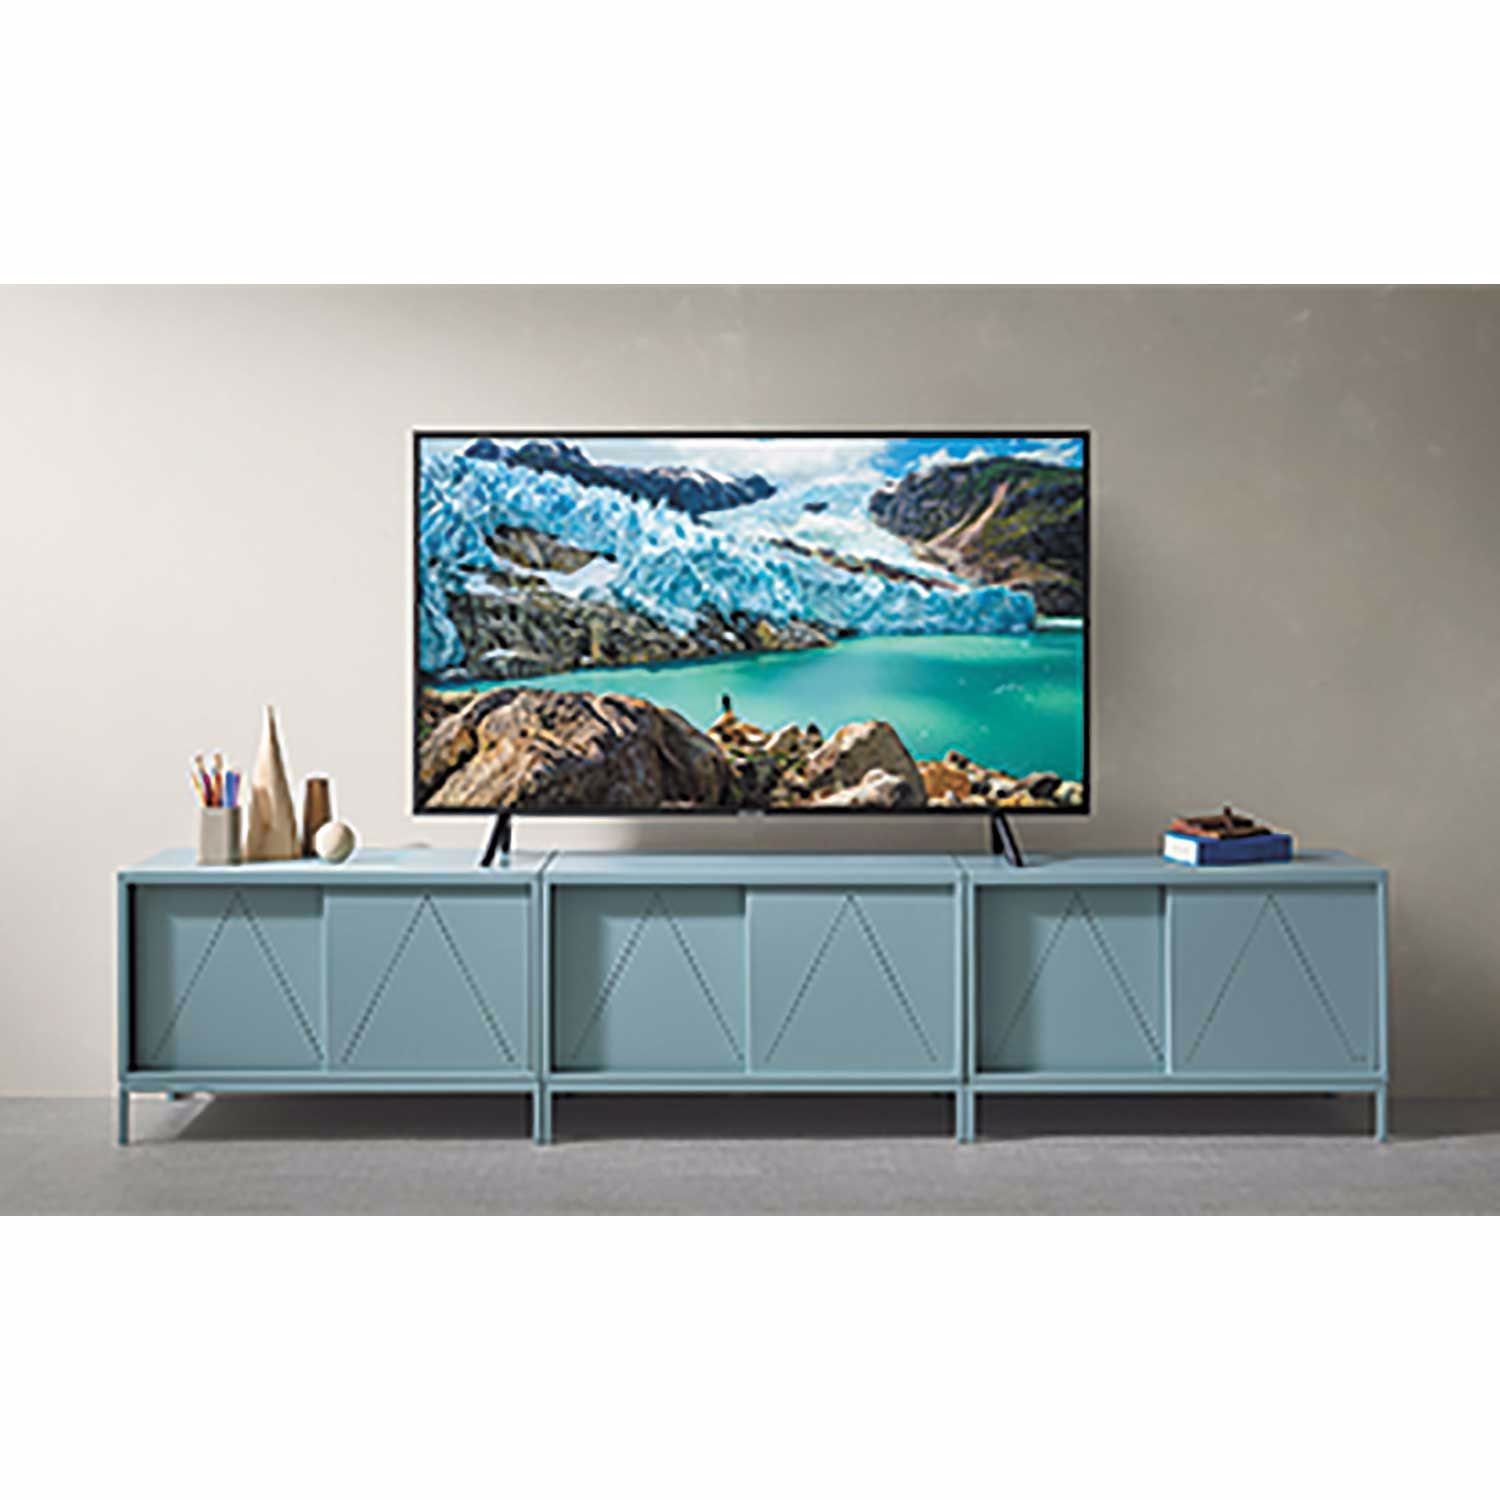 Picture of Samsung 65-Inch Class 4k Ultra TV Smart LED TV